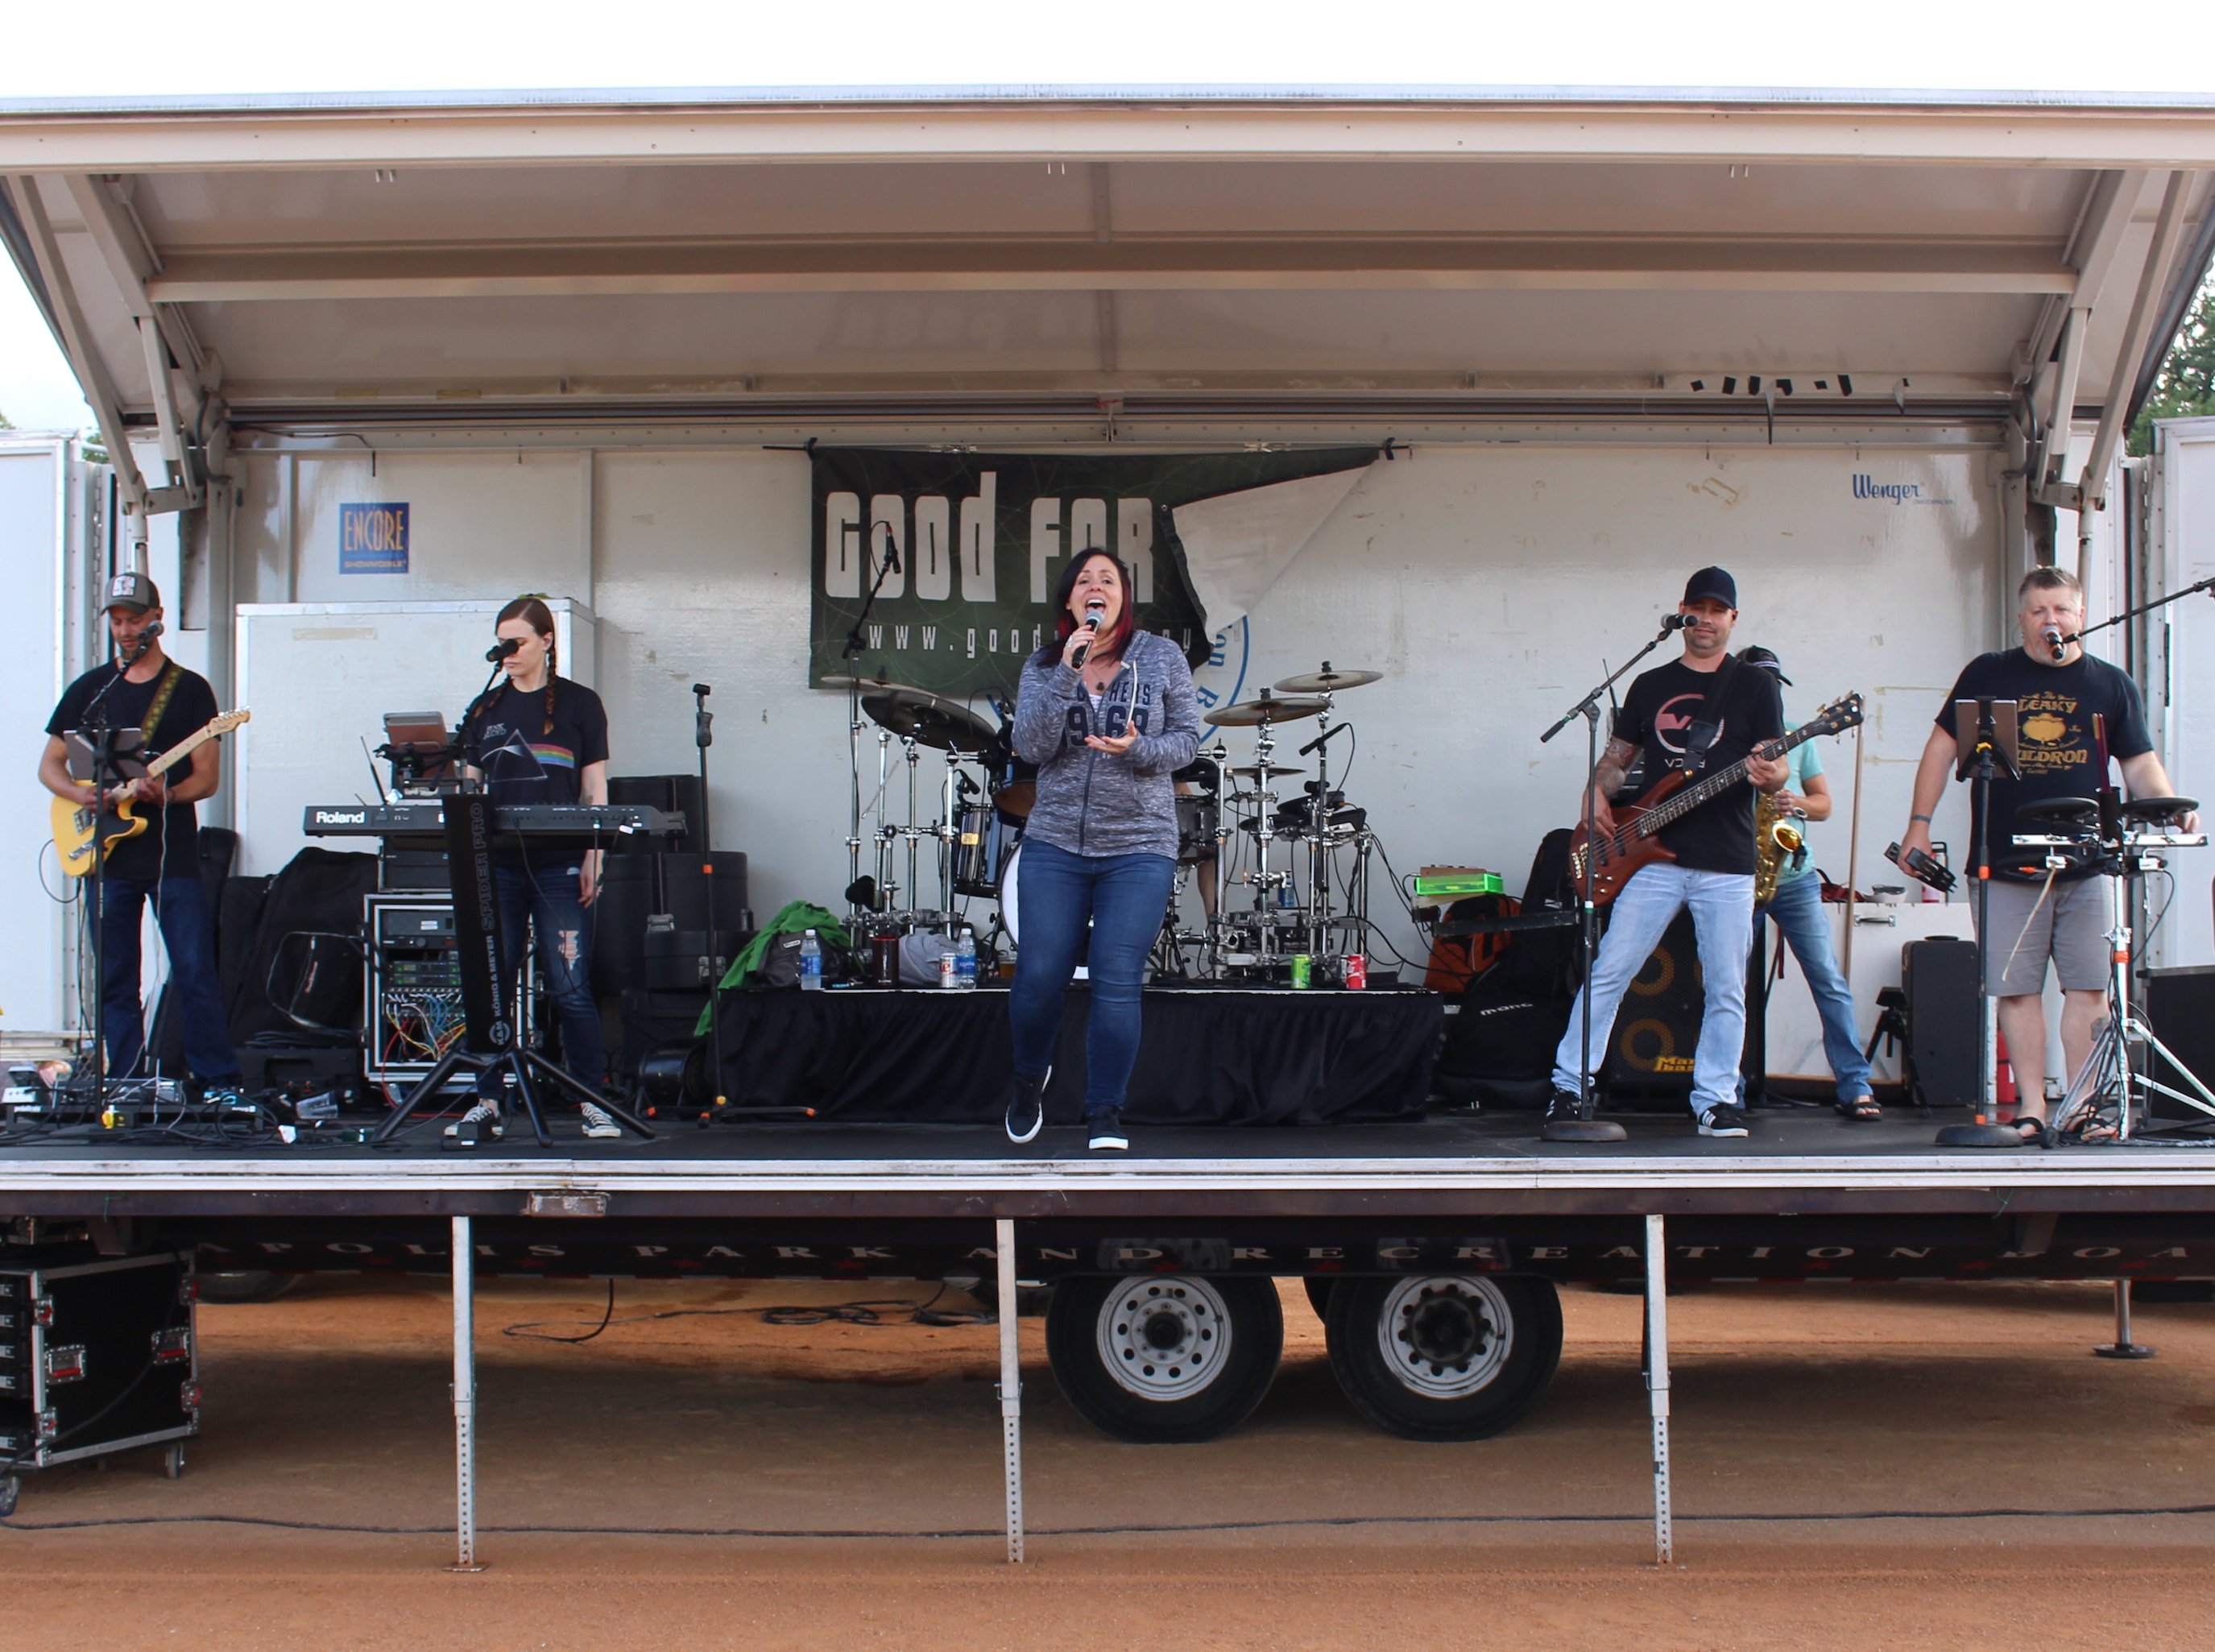 Melissa Ellingson of the band Good for Gary sings, surrounded by bandmates (from left to right) Jesse Totushek, Kiersty Santos, Benn Jackson and Dan Zschokke. Not pictured are members Kirk Stallings (drums) and Jason Minke (saxophone).